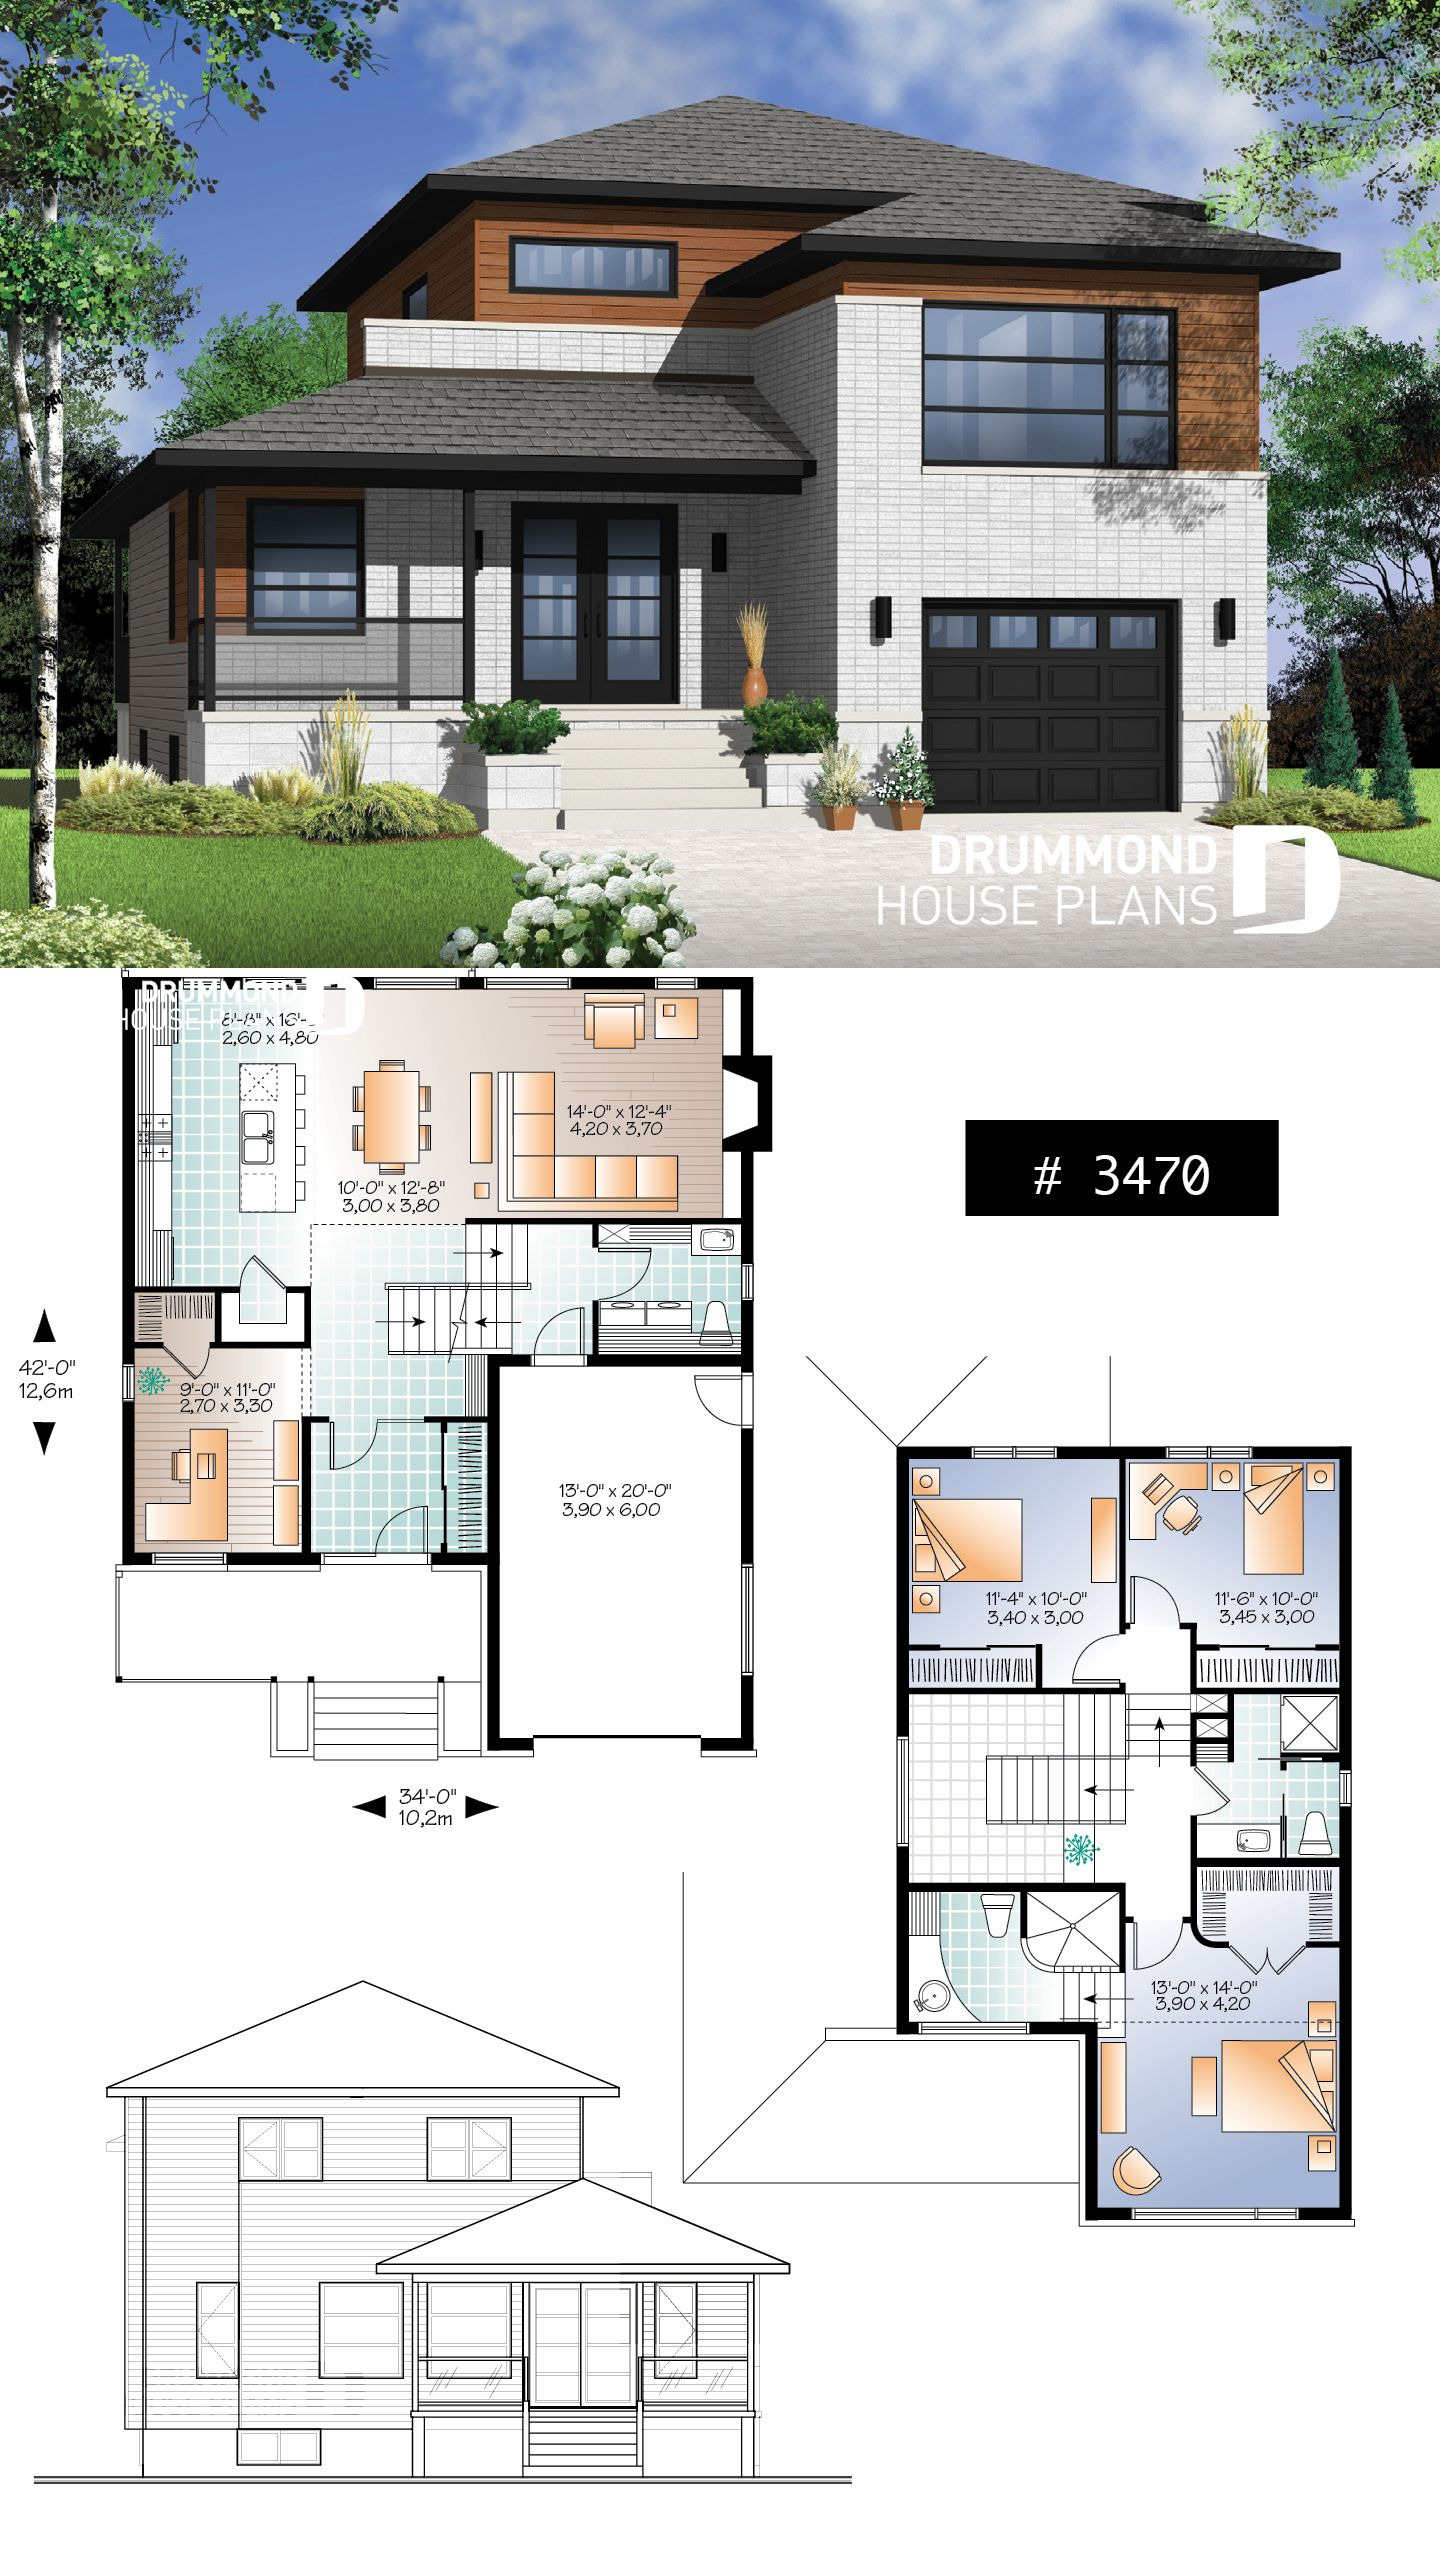 Open Floor Plans for Houses with Pictures Lovely House Plan Aldana No 3470